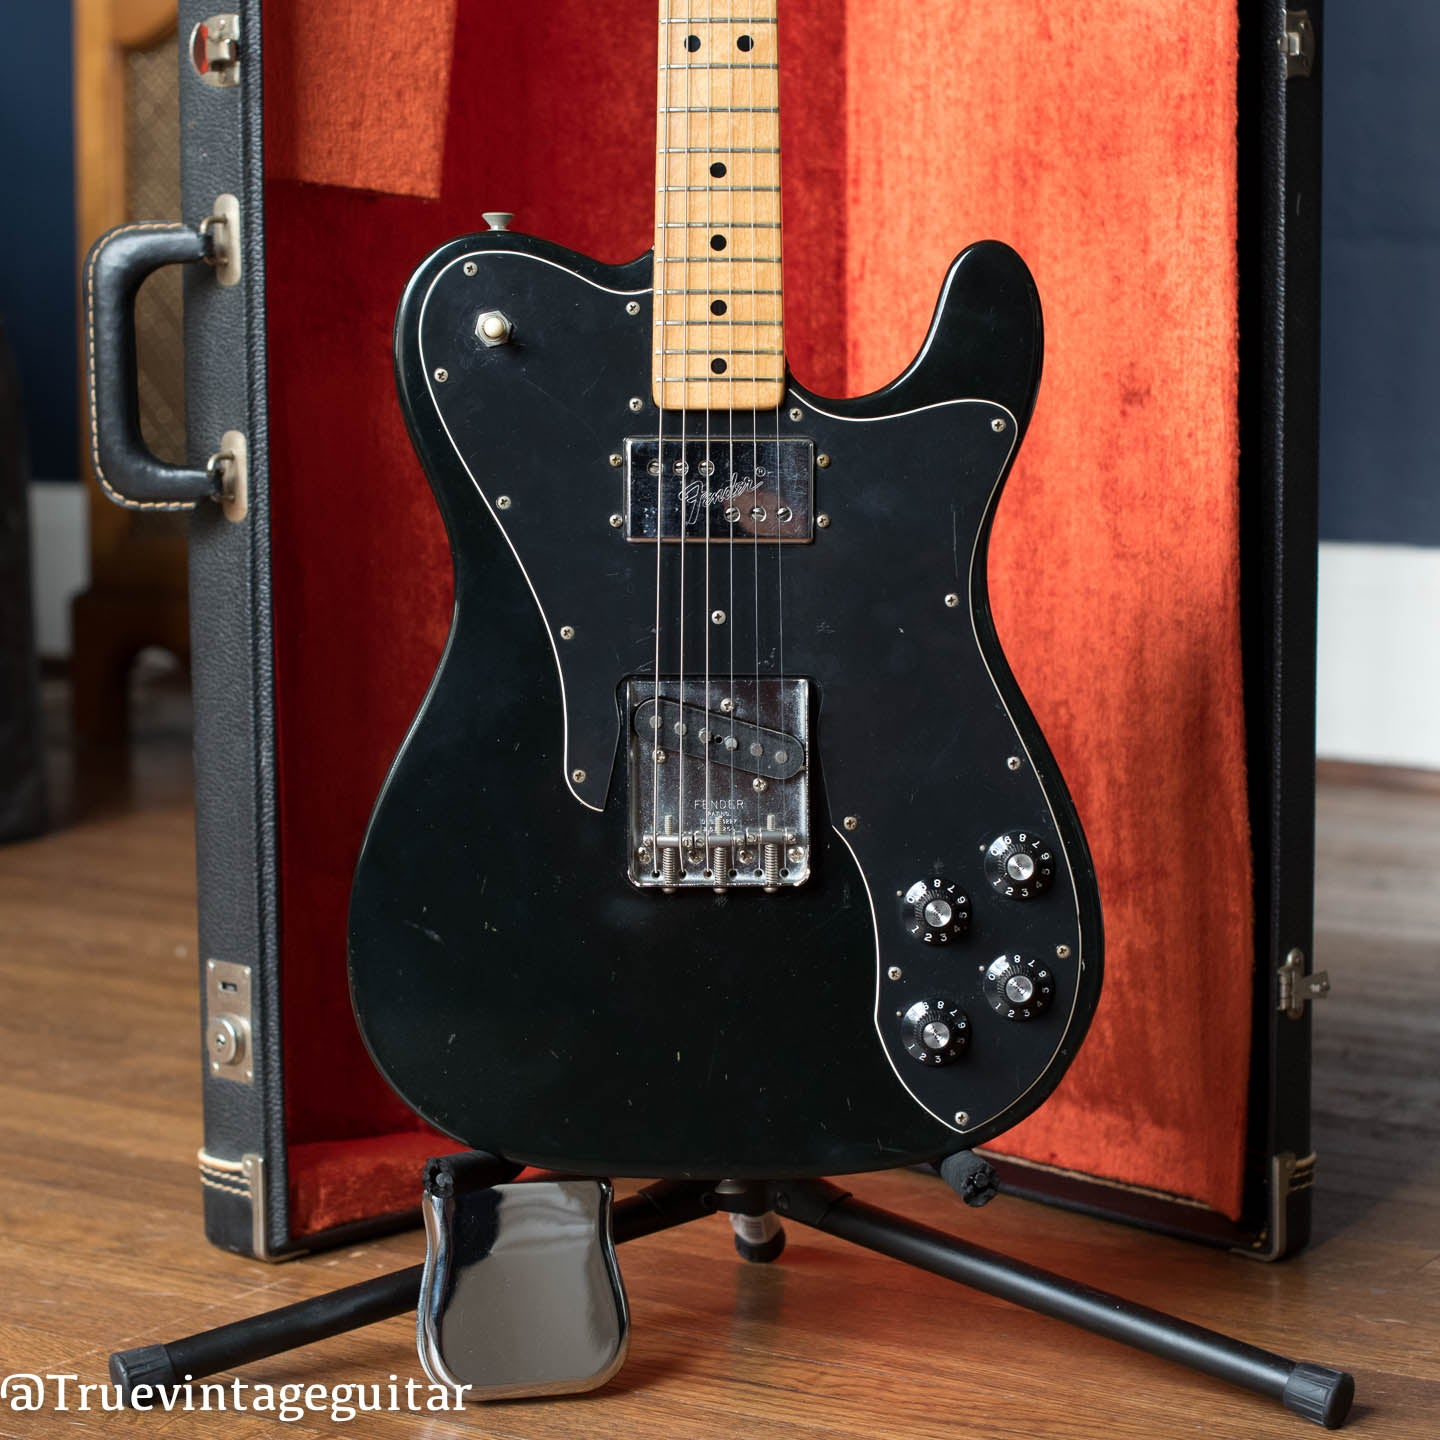 Vintage 1973 Fender Telecaster Custom Black guitar